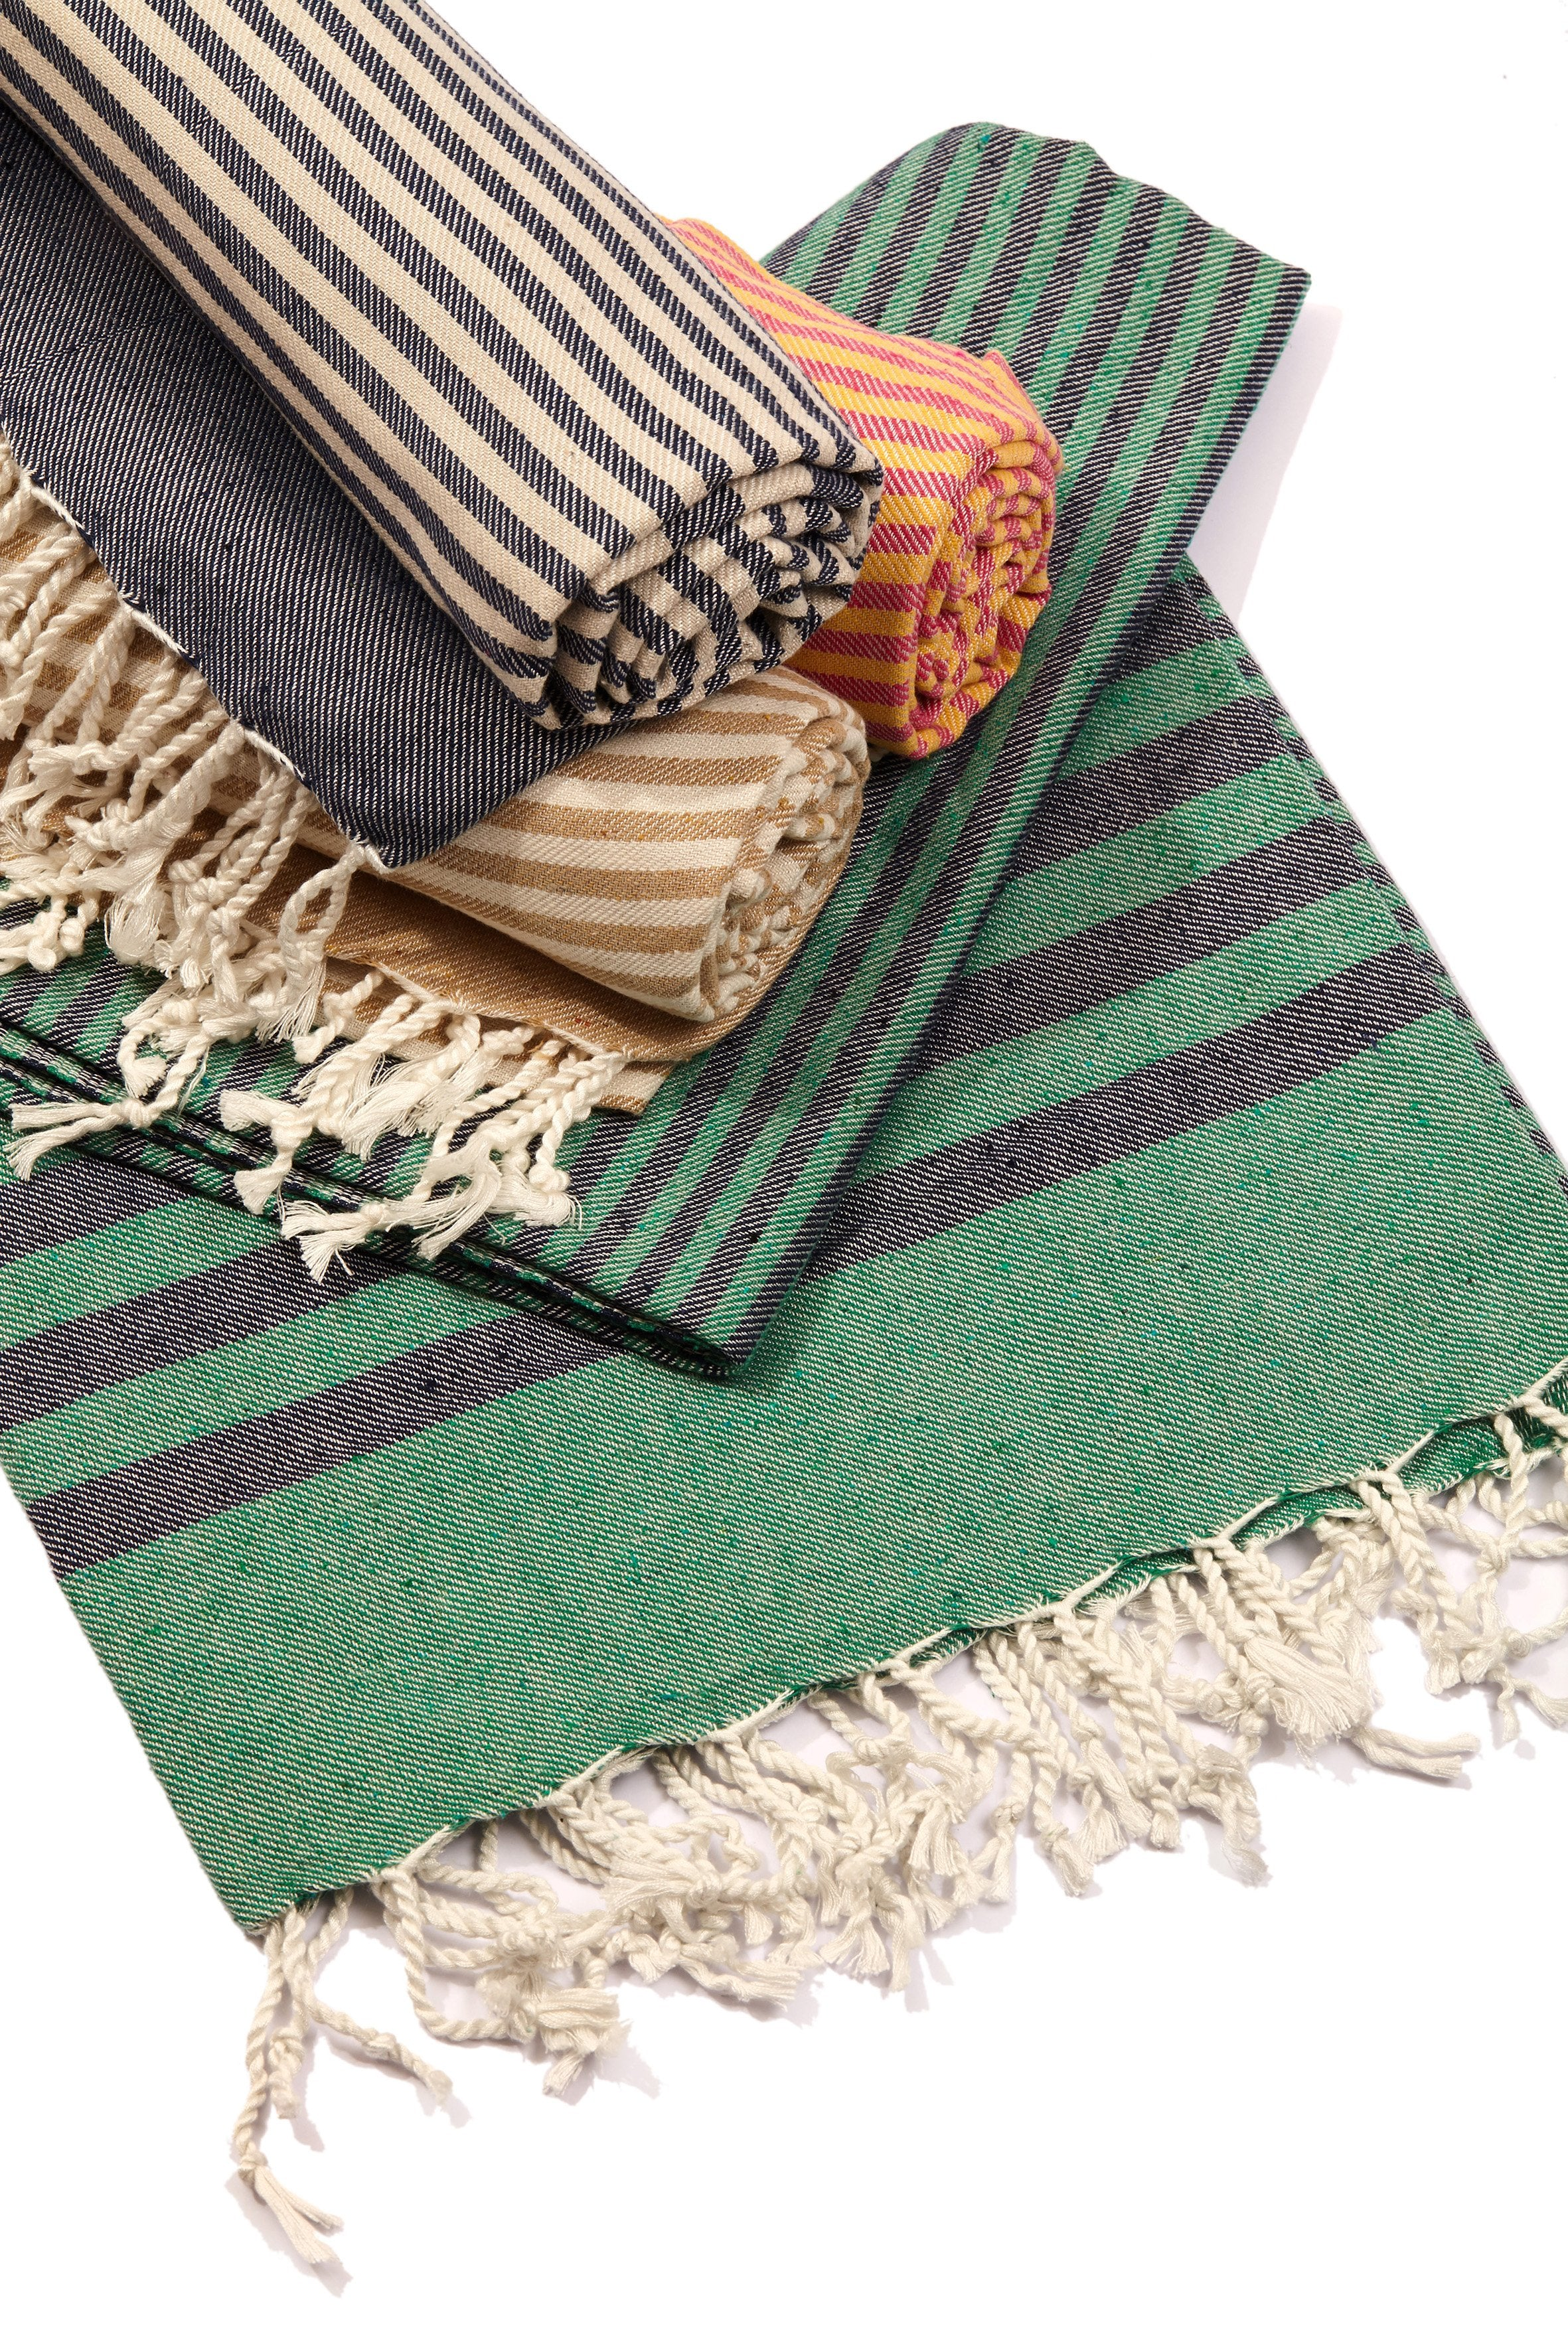 Fethiye Striped Ultra Soft Eco-Friendly Turkish Towel - Green & Navy Blue - Zip & Mos